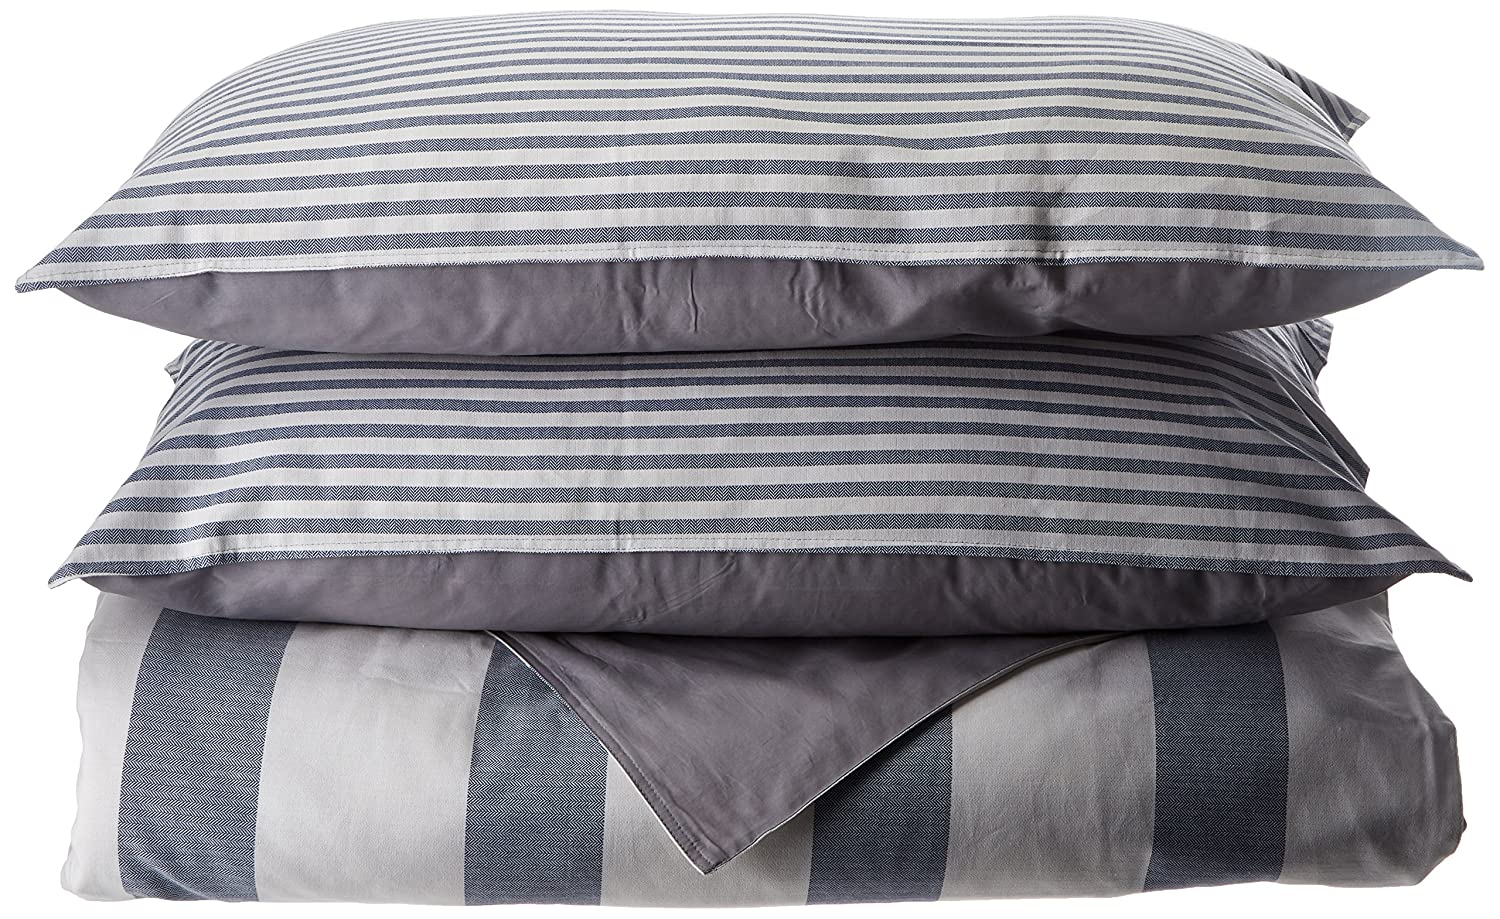 Nautica 220092 Basic Knit 16 Decorative Pillow, Gray Revman International